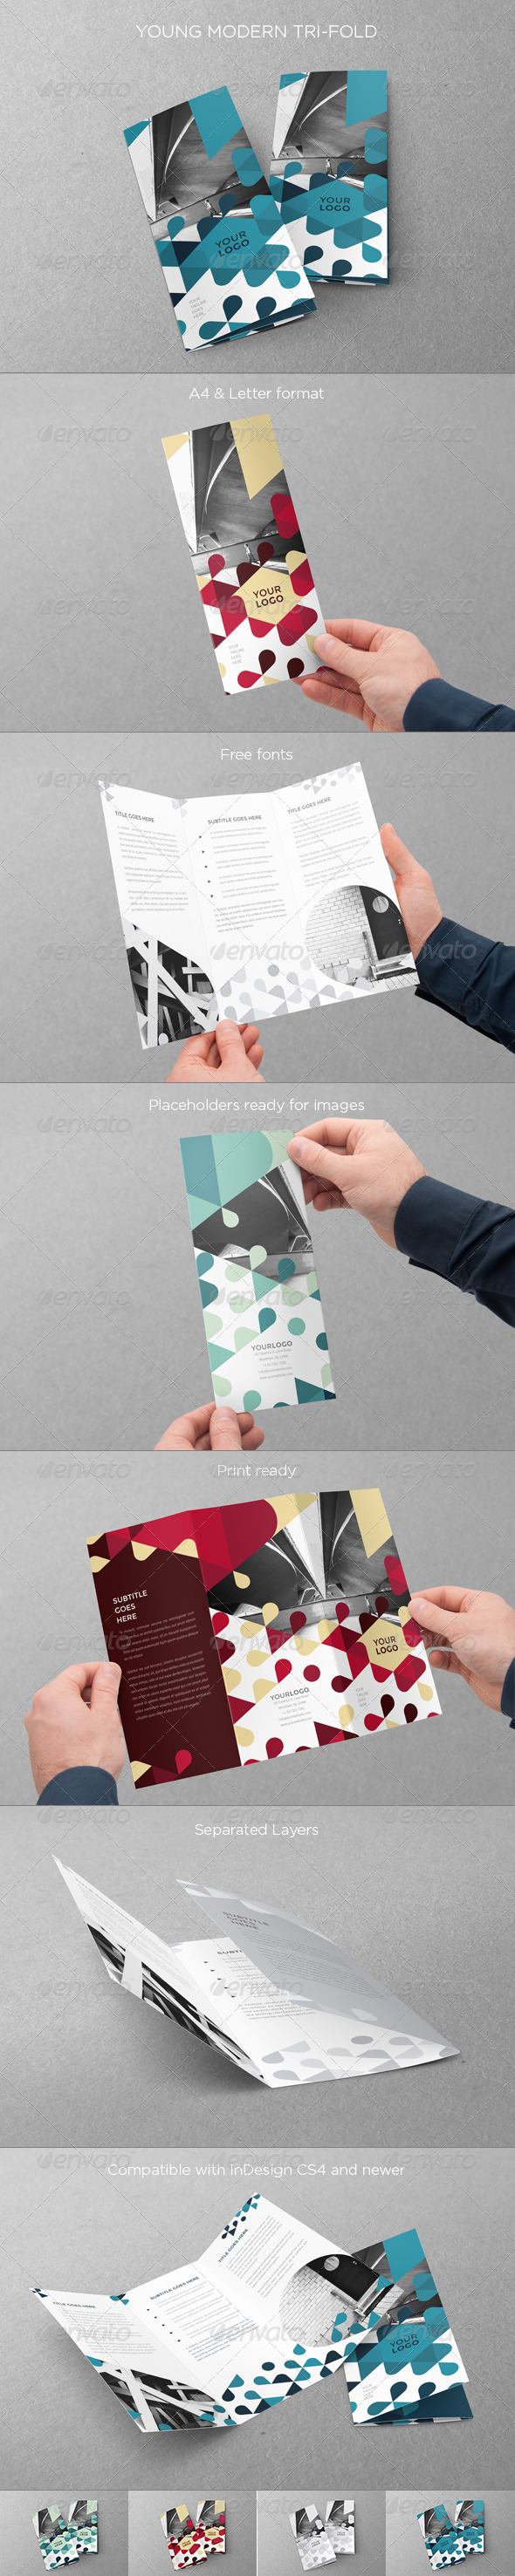 GraphicRiver Young Modern Trifold 8407522